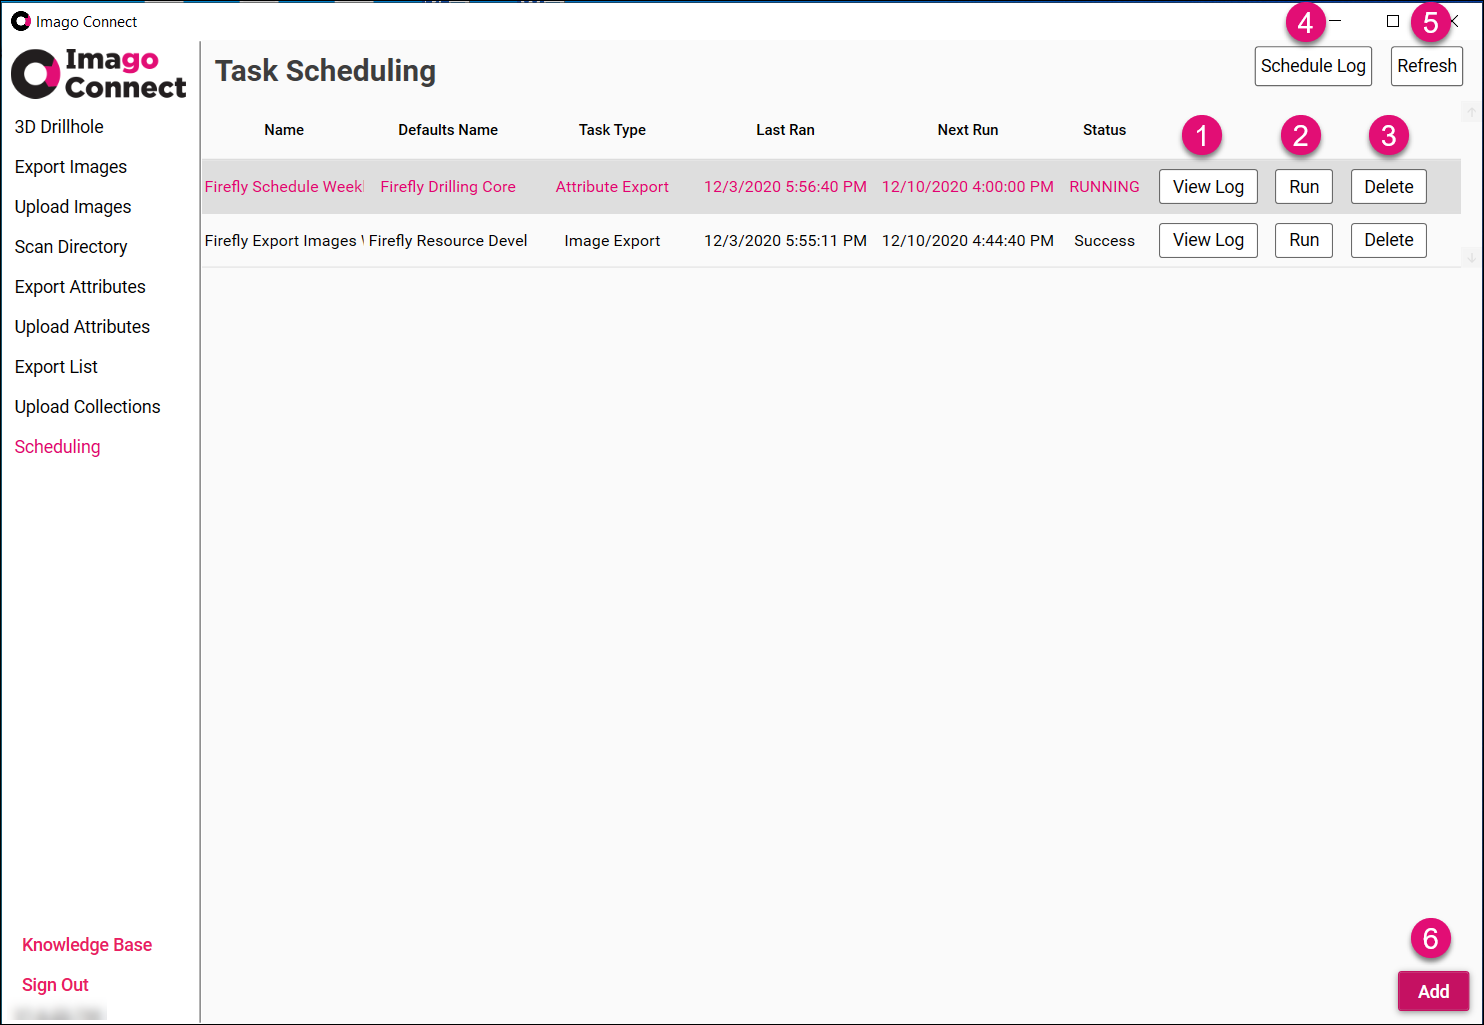 Task_Scheduling_Dialog.png